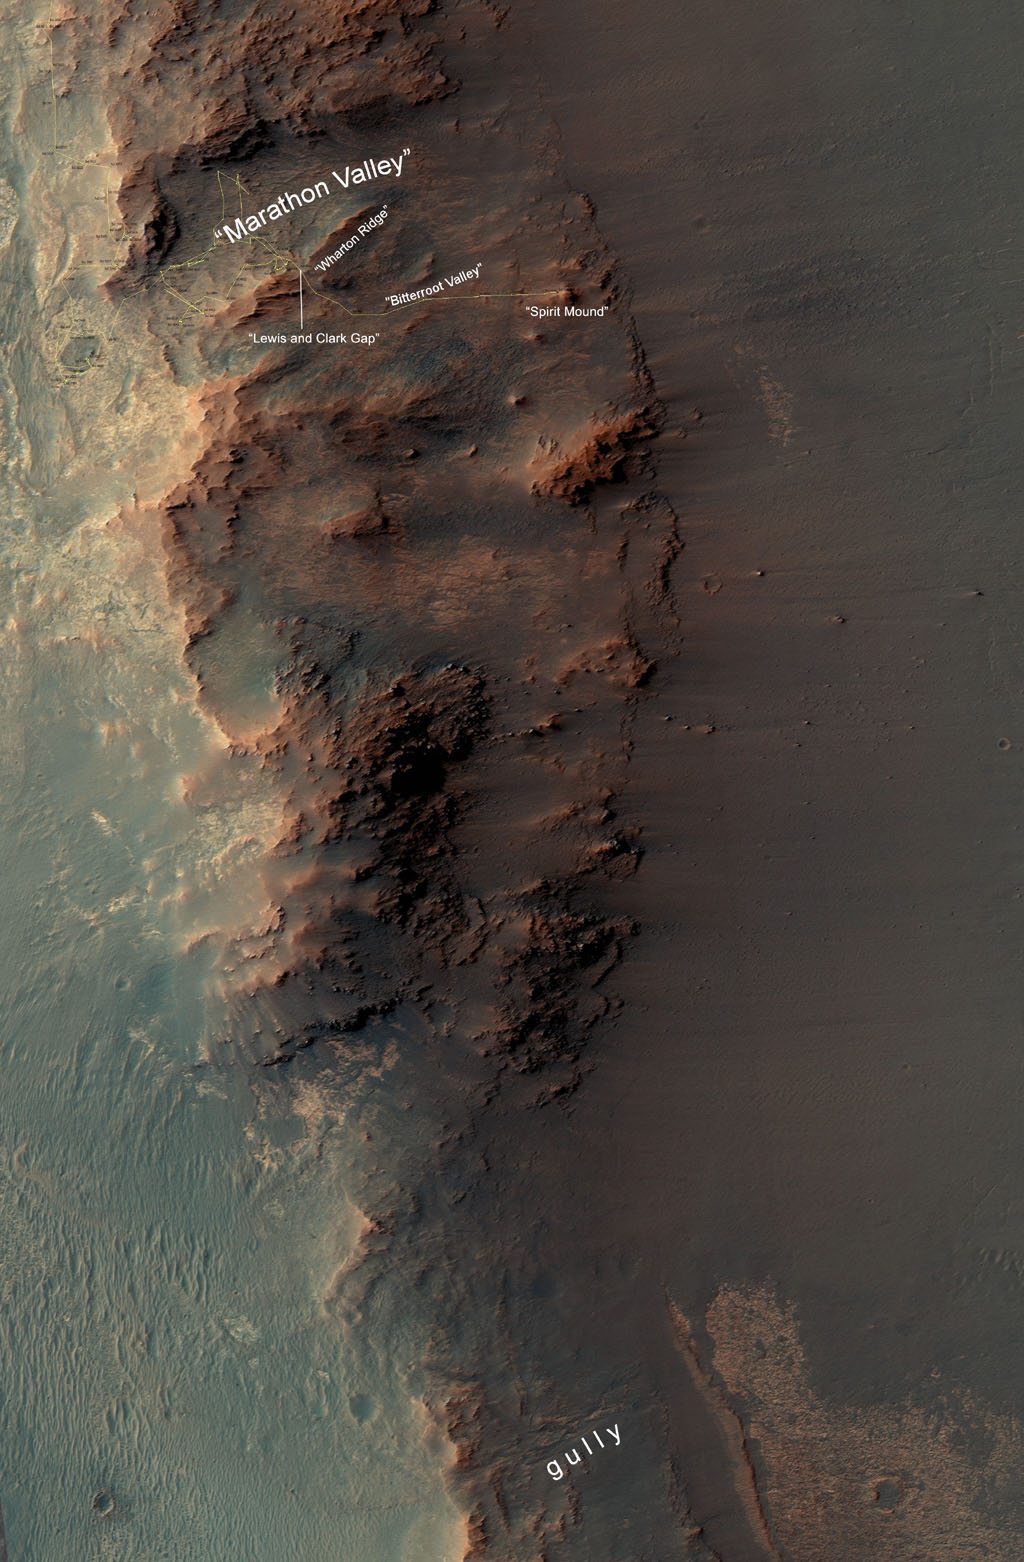 This map show a portion of Endeavour Crater's western rim that includes the